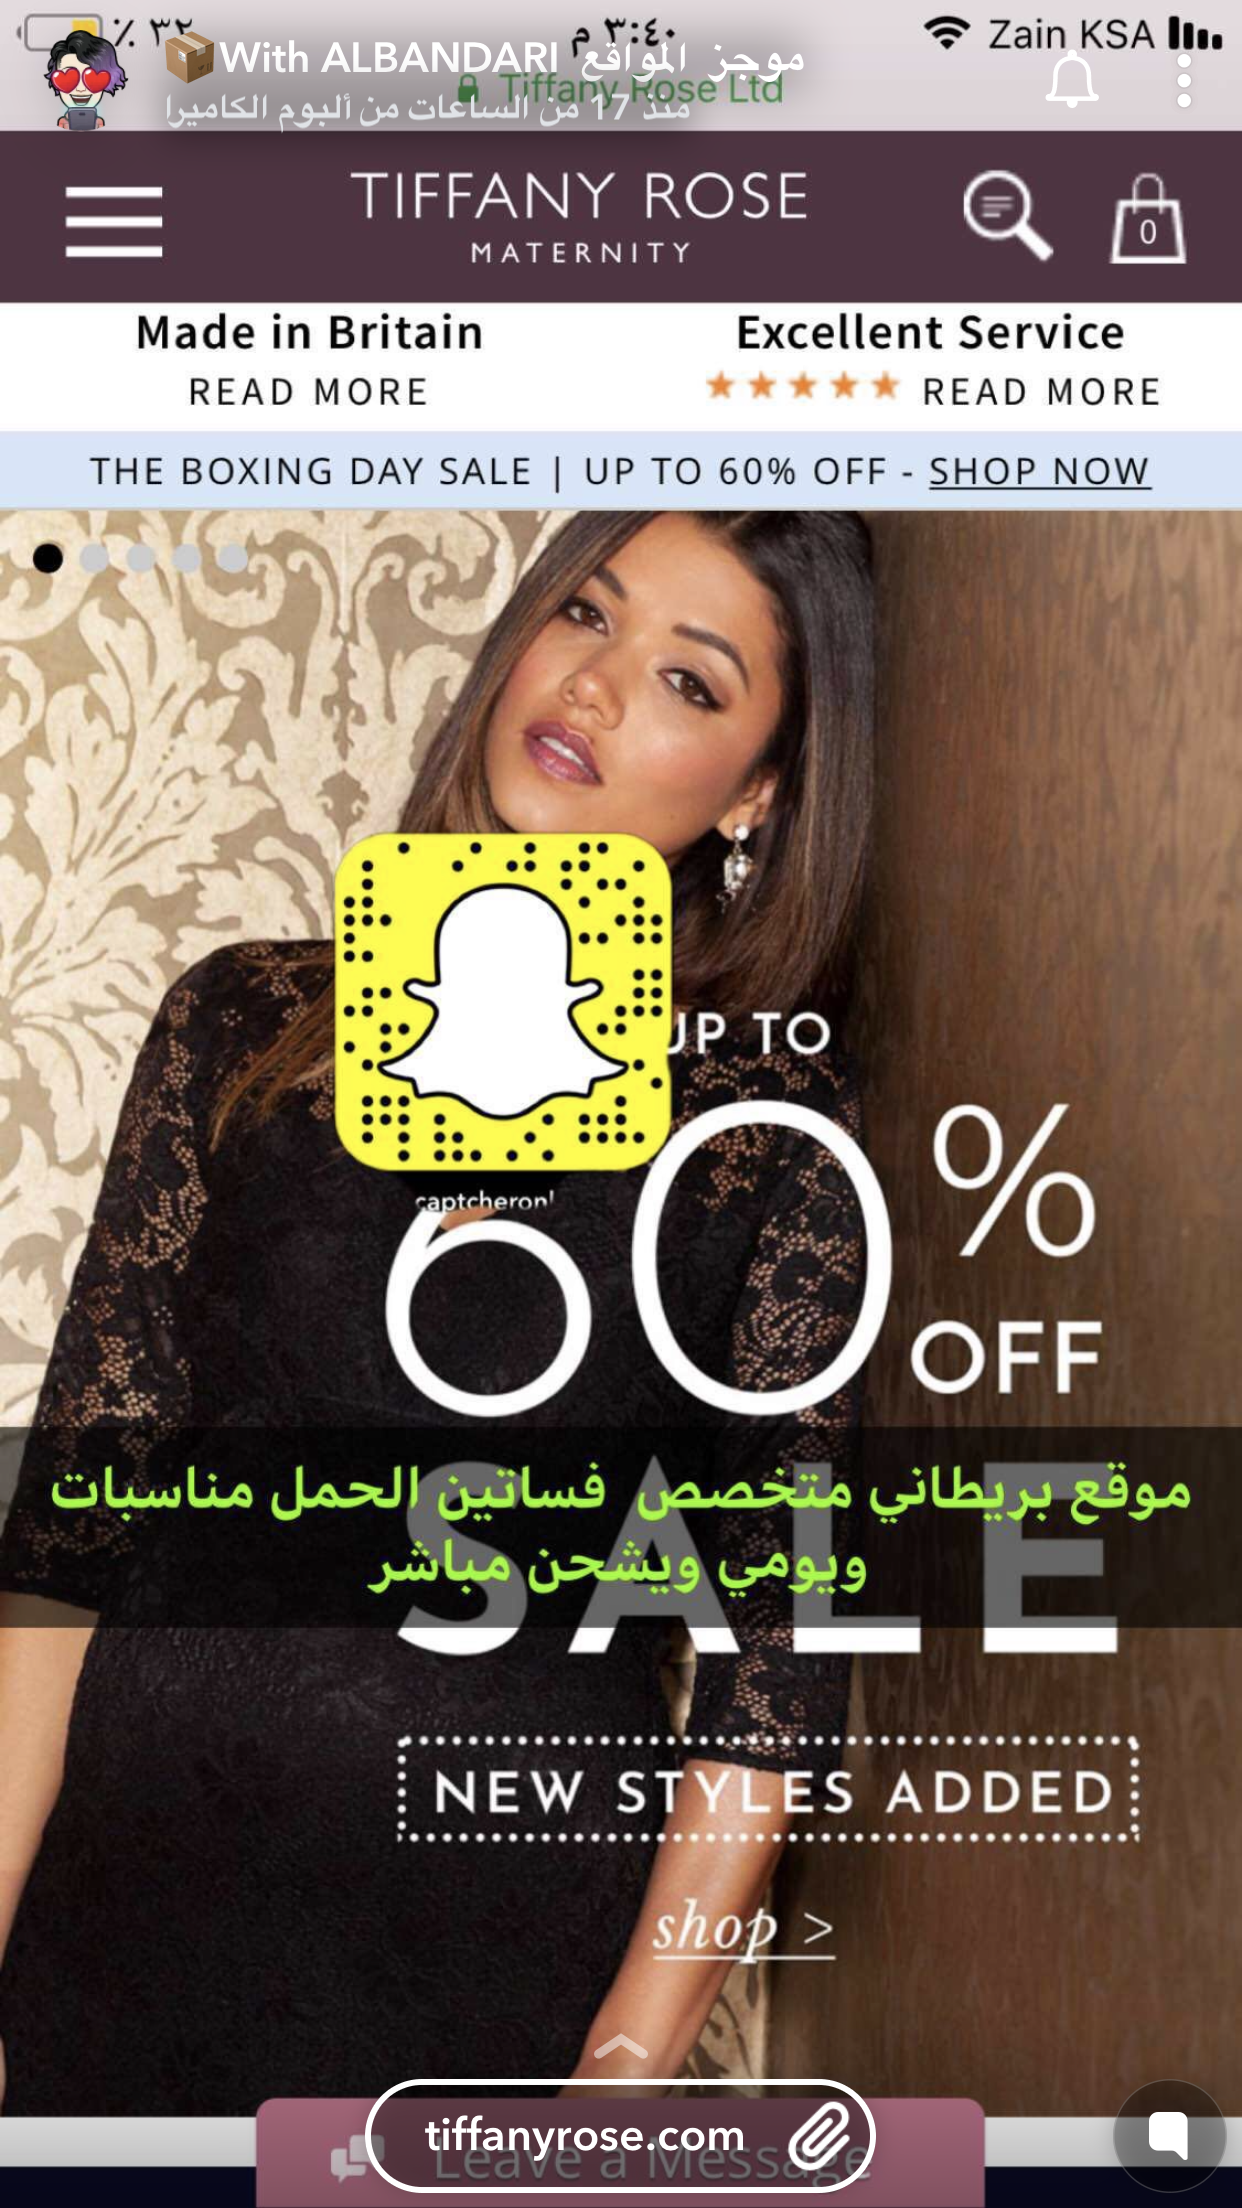 Pin by arwa on مواقع in 2020 Shopping websites, Online